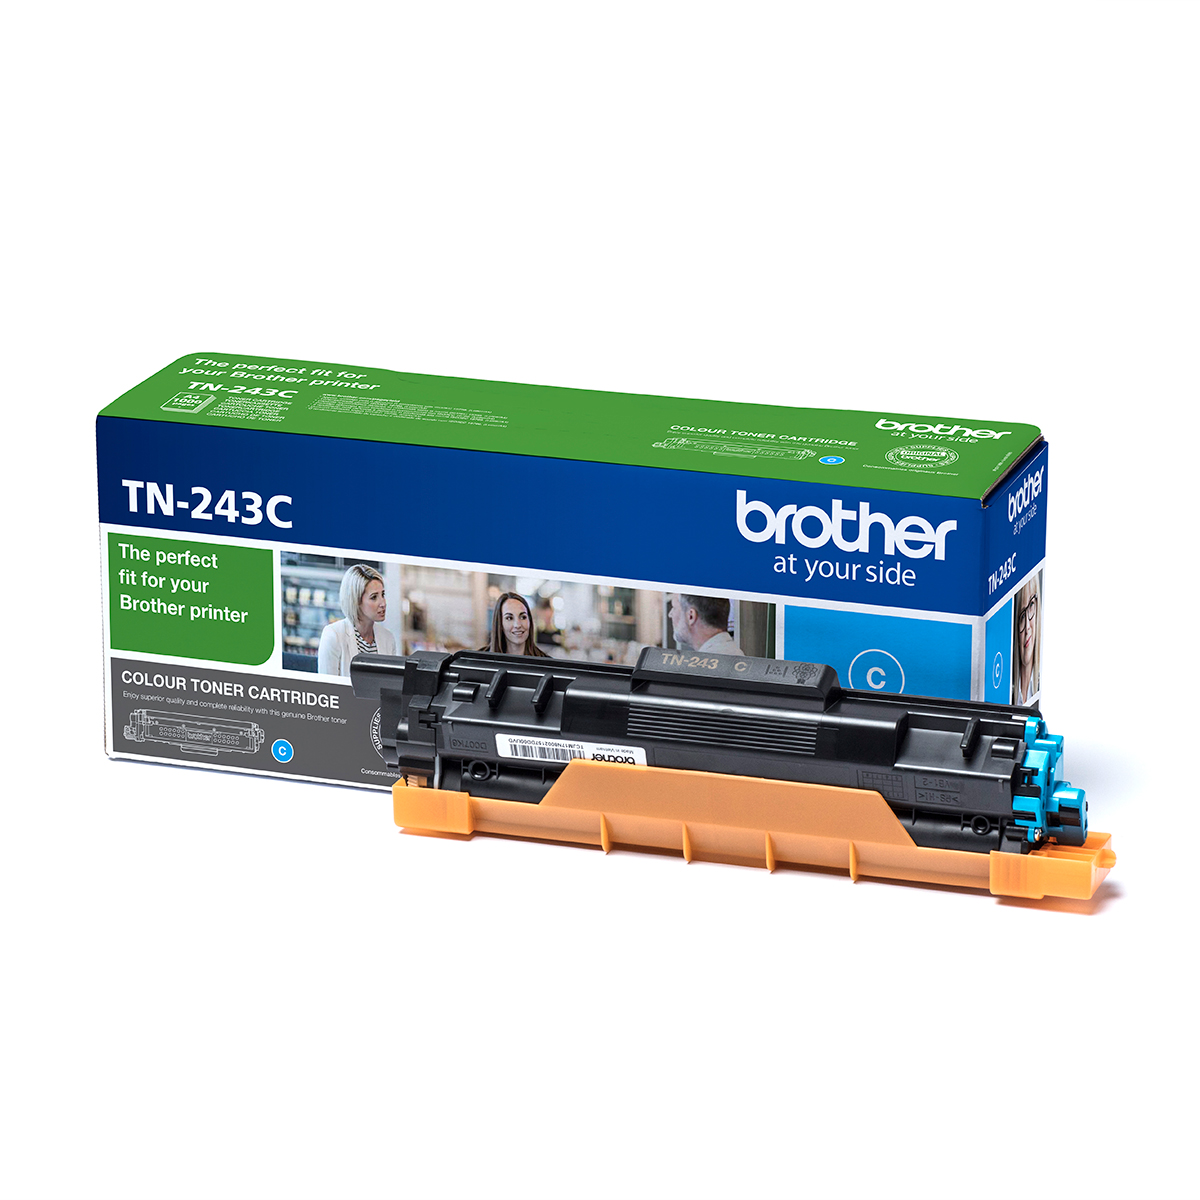 Brother TN-243C Standard Cyan Toner